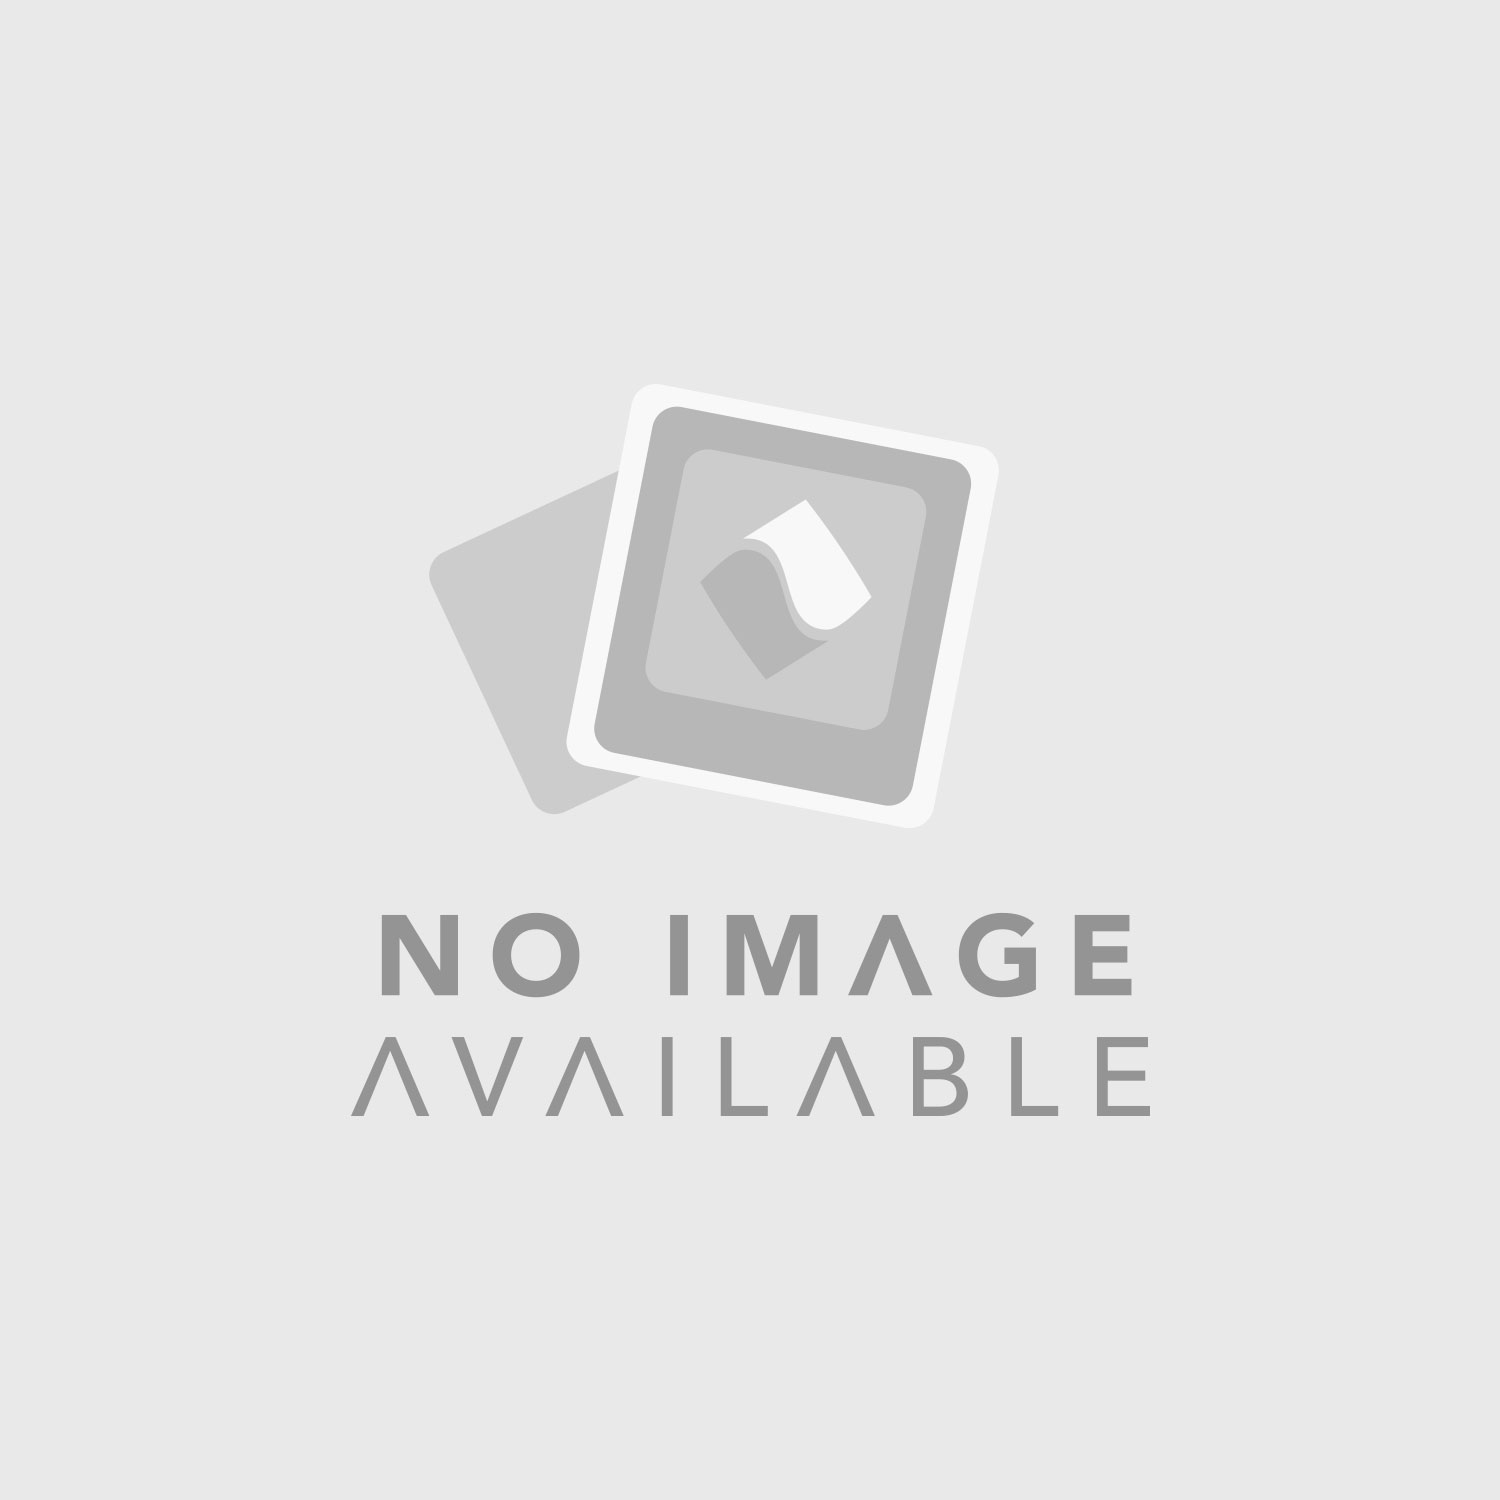 Canare BCP-B26 75 Ohm BNC Crimp Plug for 1855A